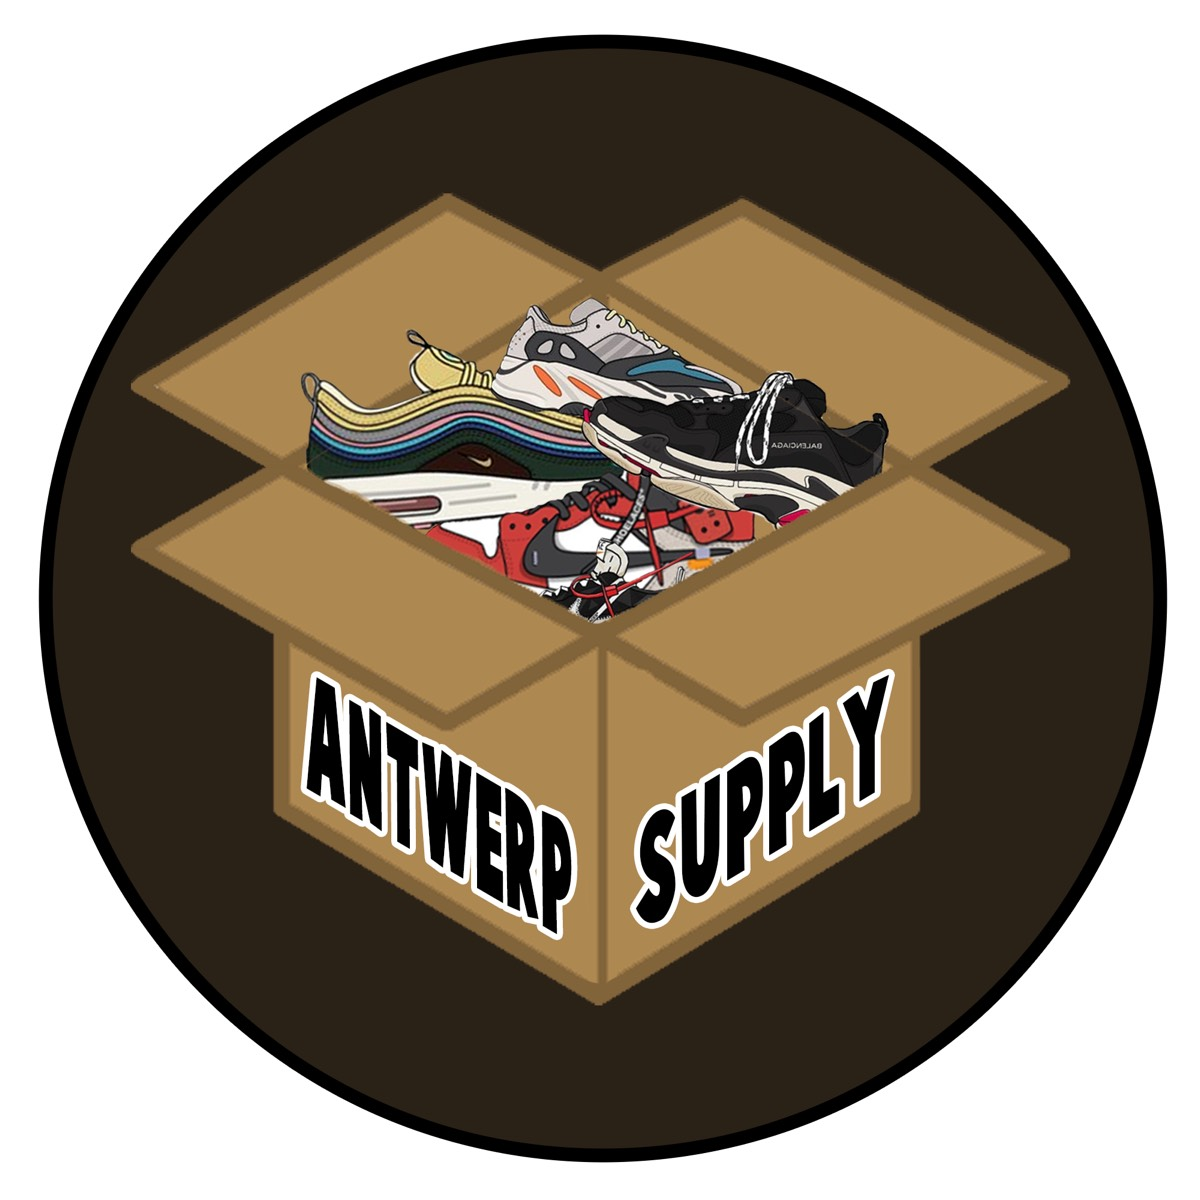 Bump profile picture for @antwerpsupply